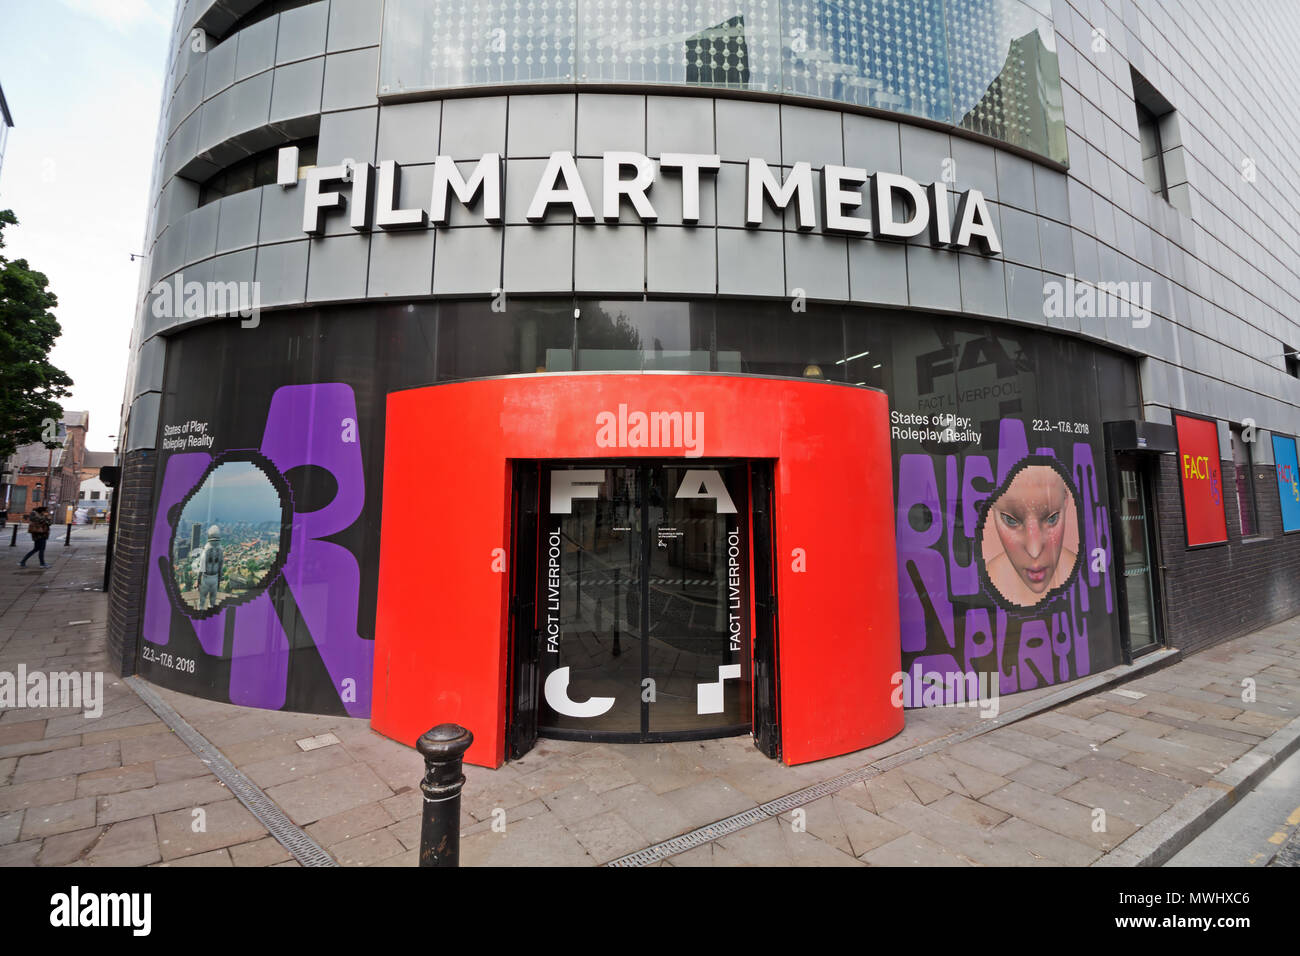 FACT media arts center in Wood Street Liverpool UK. Offer a unique programme of exhibitions, film and participant-led art projects. - Stock Image